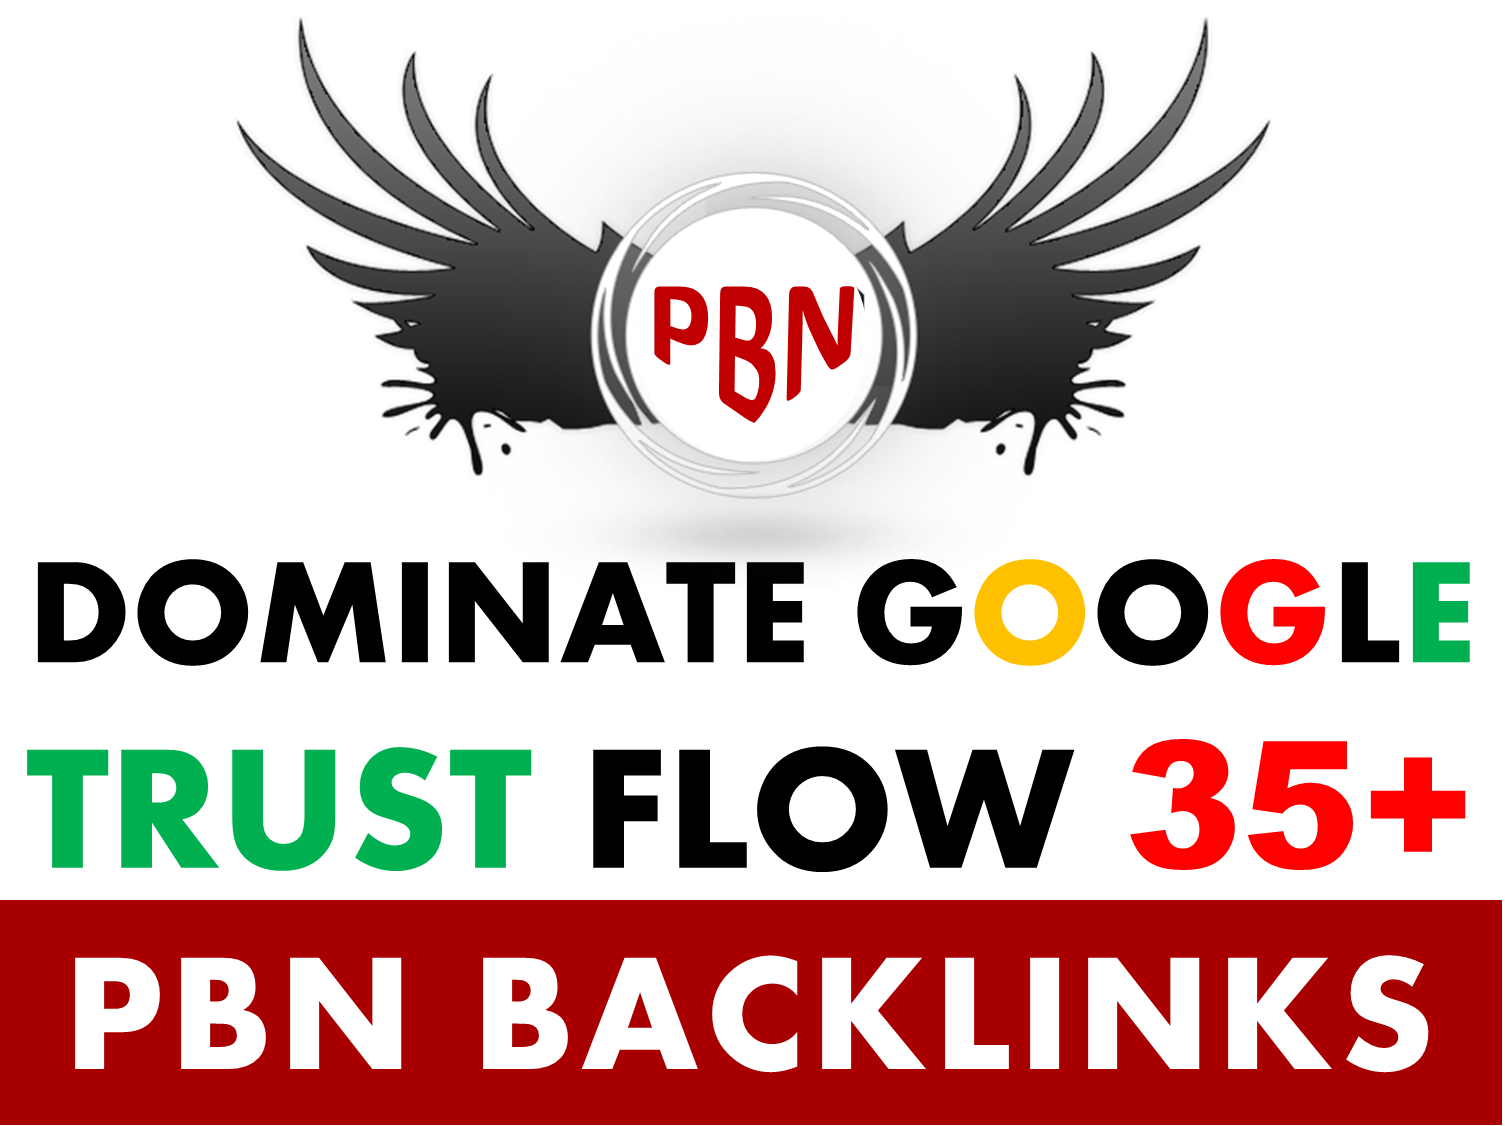 5 PBN Backlinks with TRUST FLOW 35 Plus First Time on SEOCLERKS